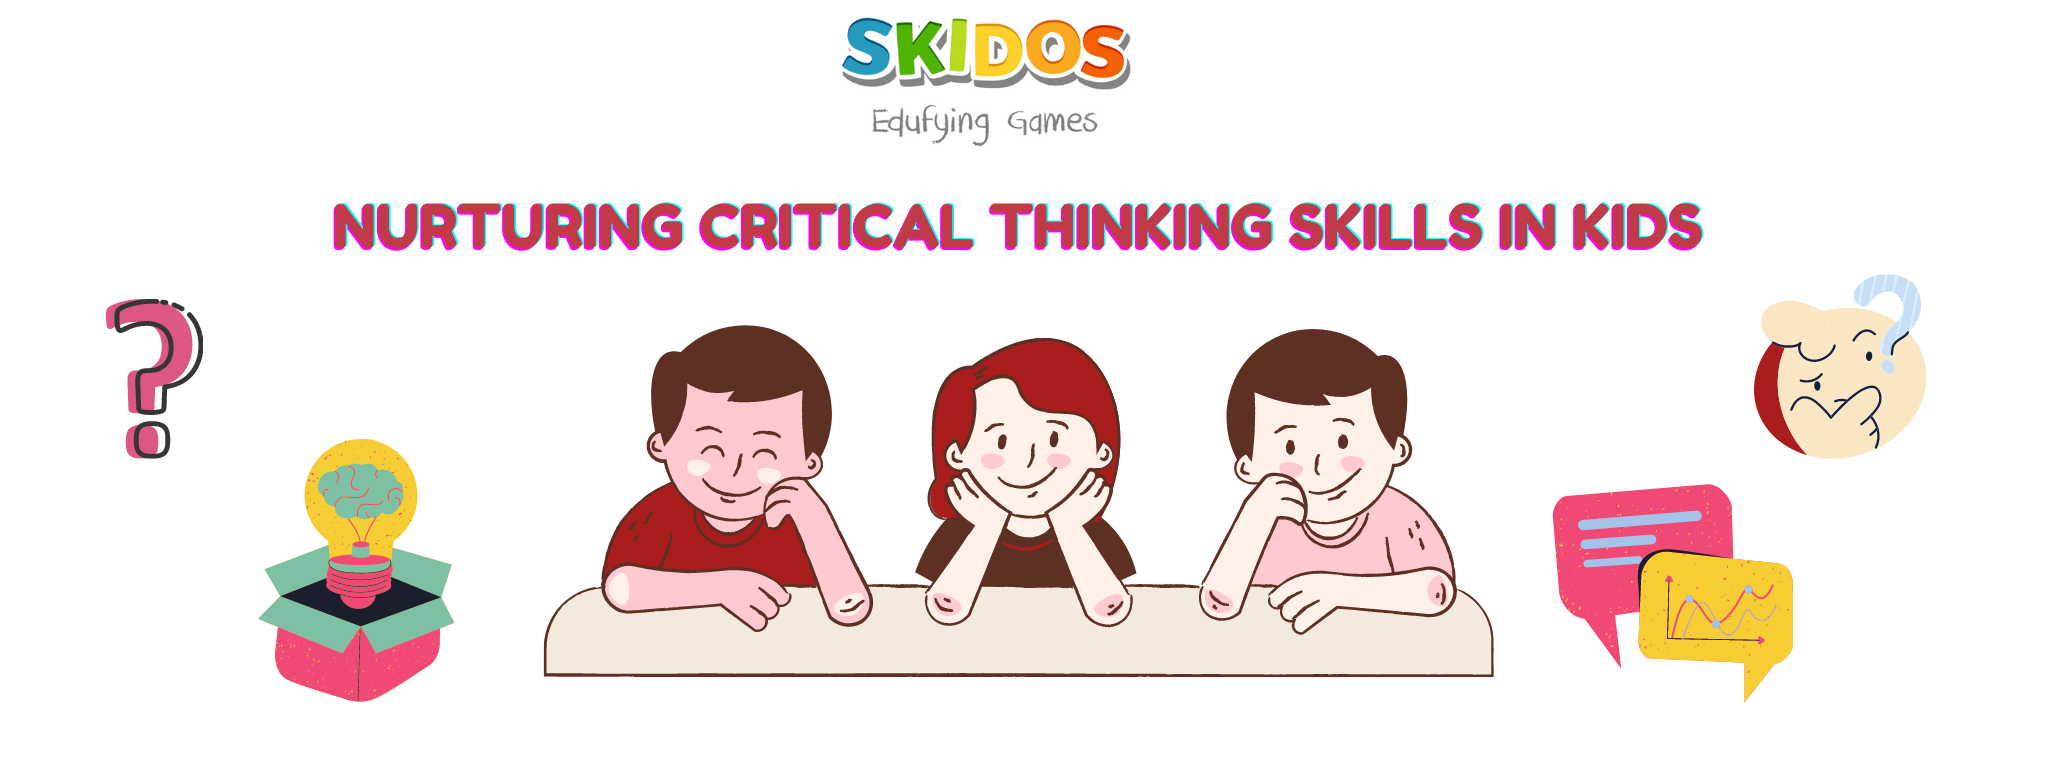 nurturing critical thinking skills in kids, students